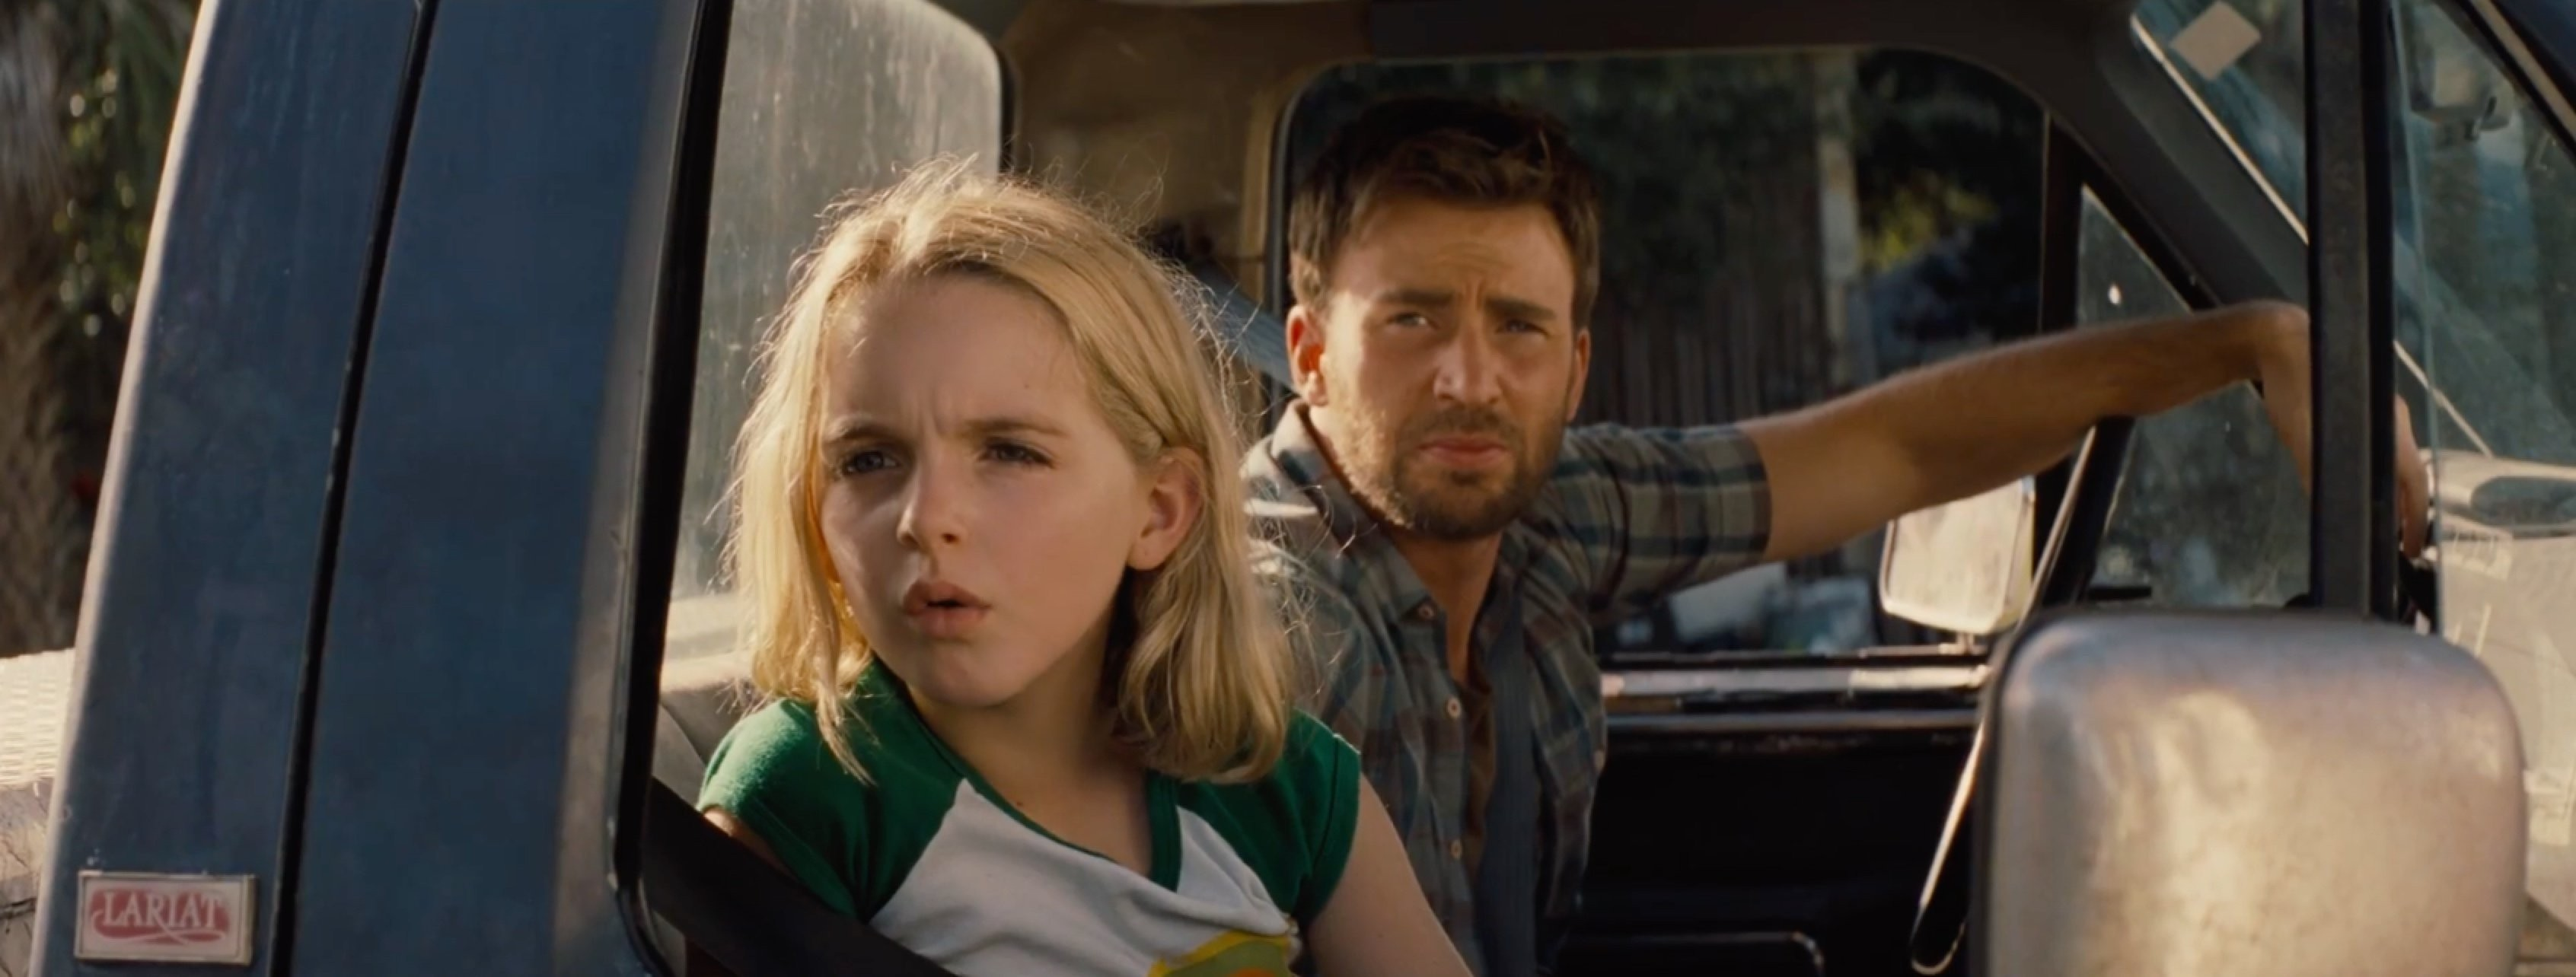 4k Wallpaper Phone Cars Wallpaper Gifted Mckenna Grace Chris Evans Best Movies